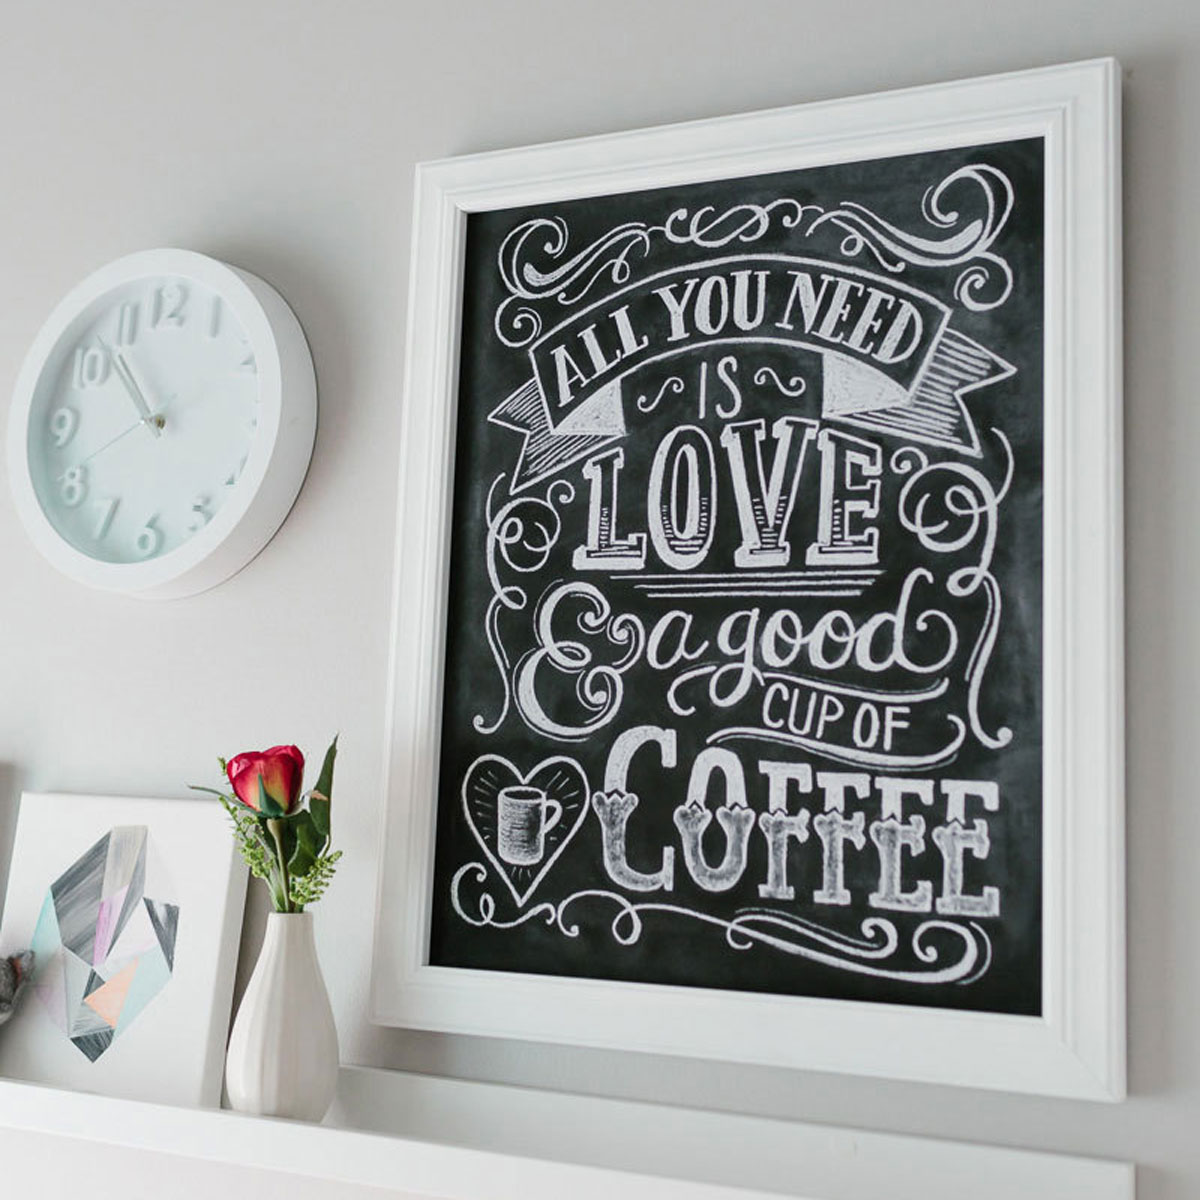 mrwonderfulshop_P8COF2_lamina_all_you_need_is_coffee_02